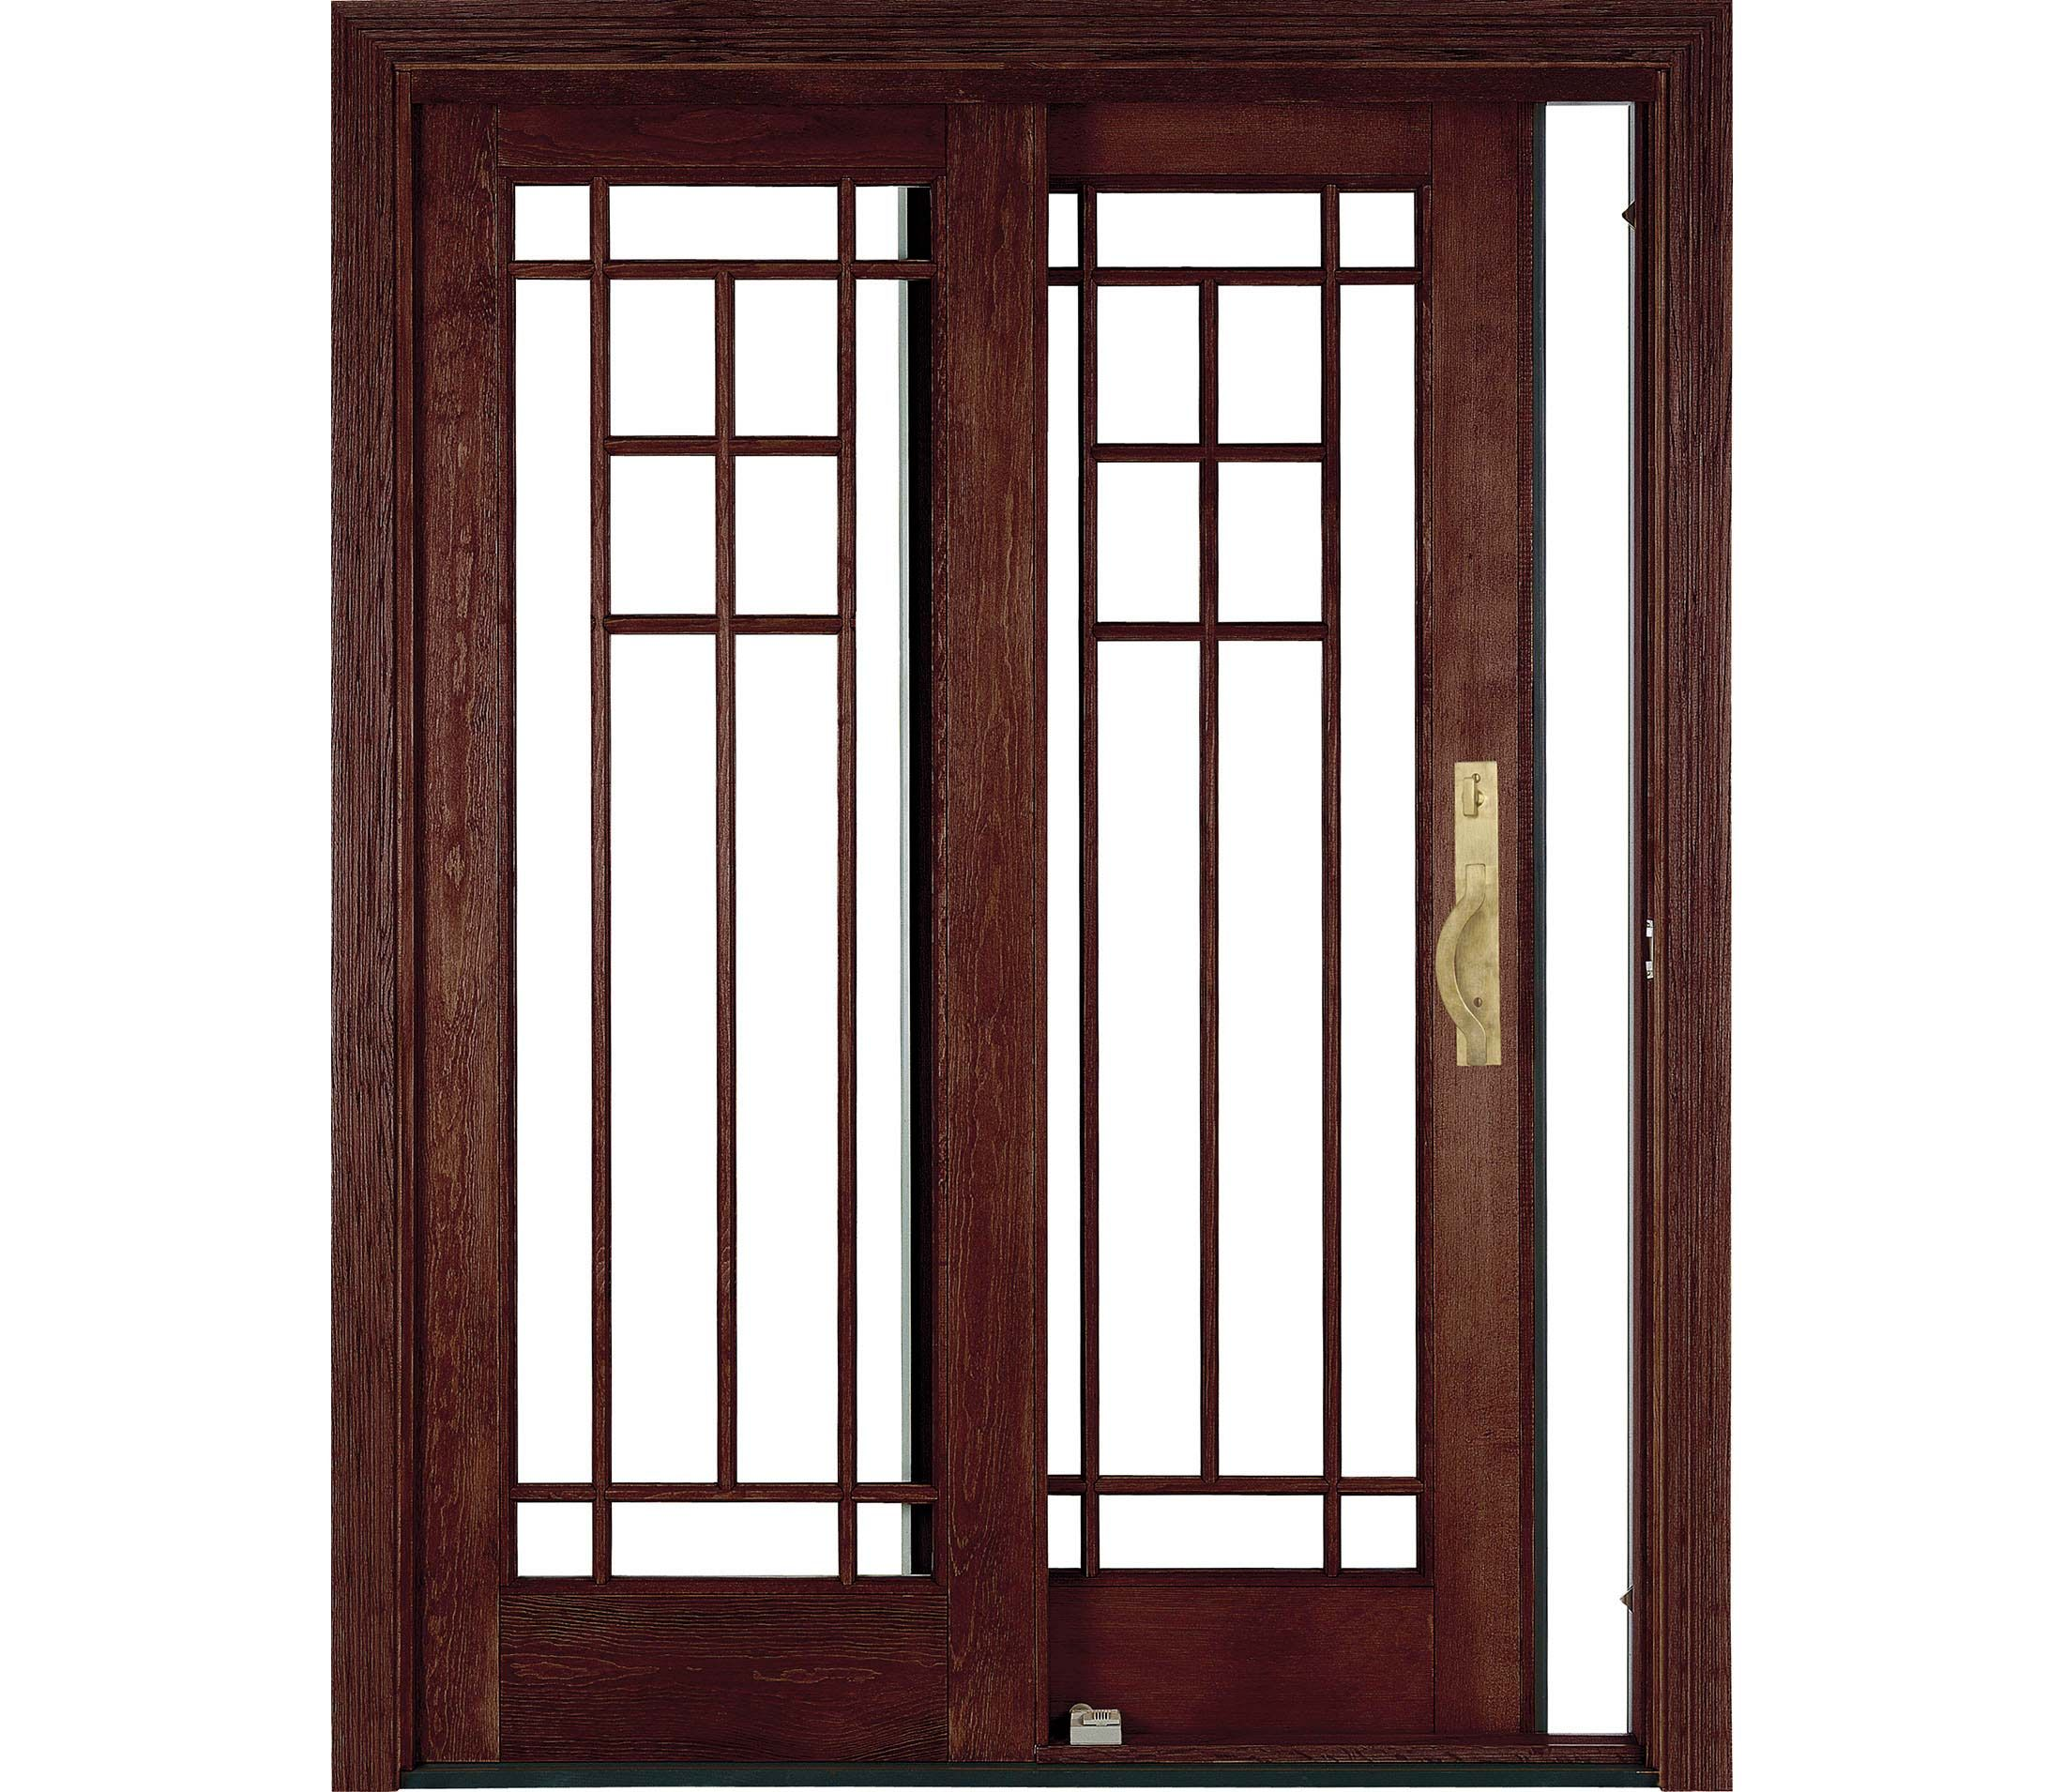 Architect Series Sliding Patio Door | Pella.com